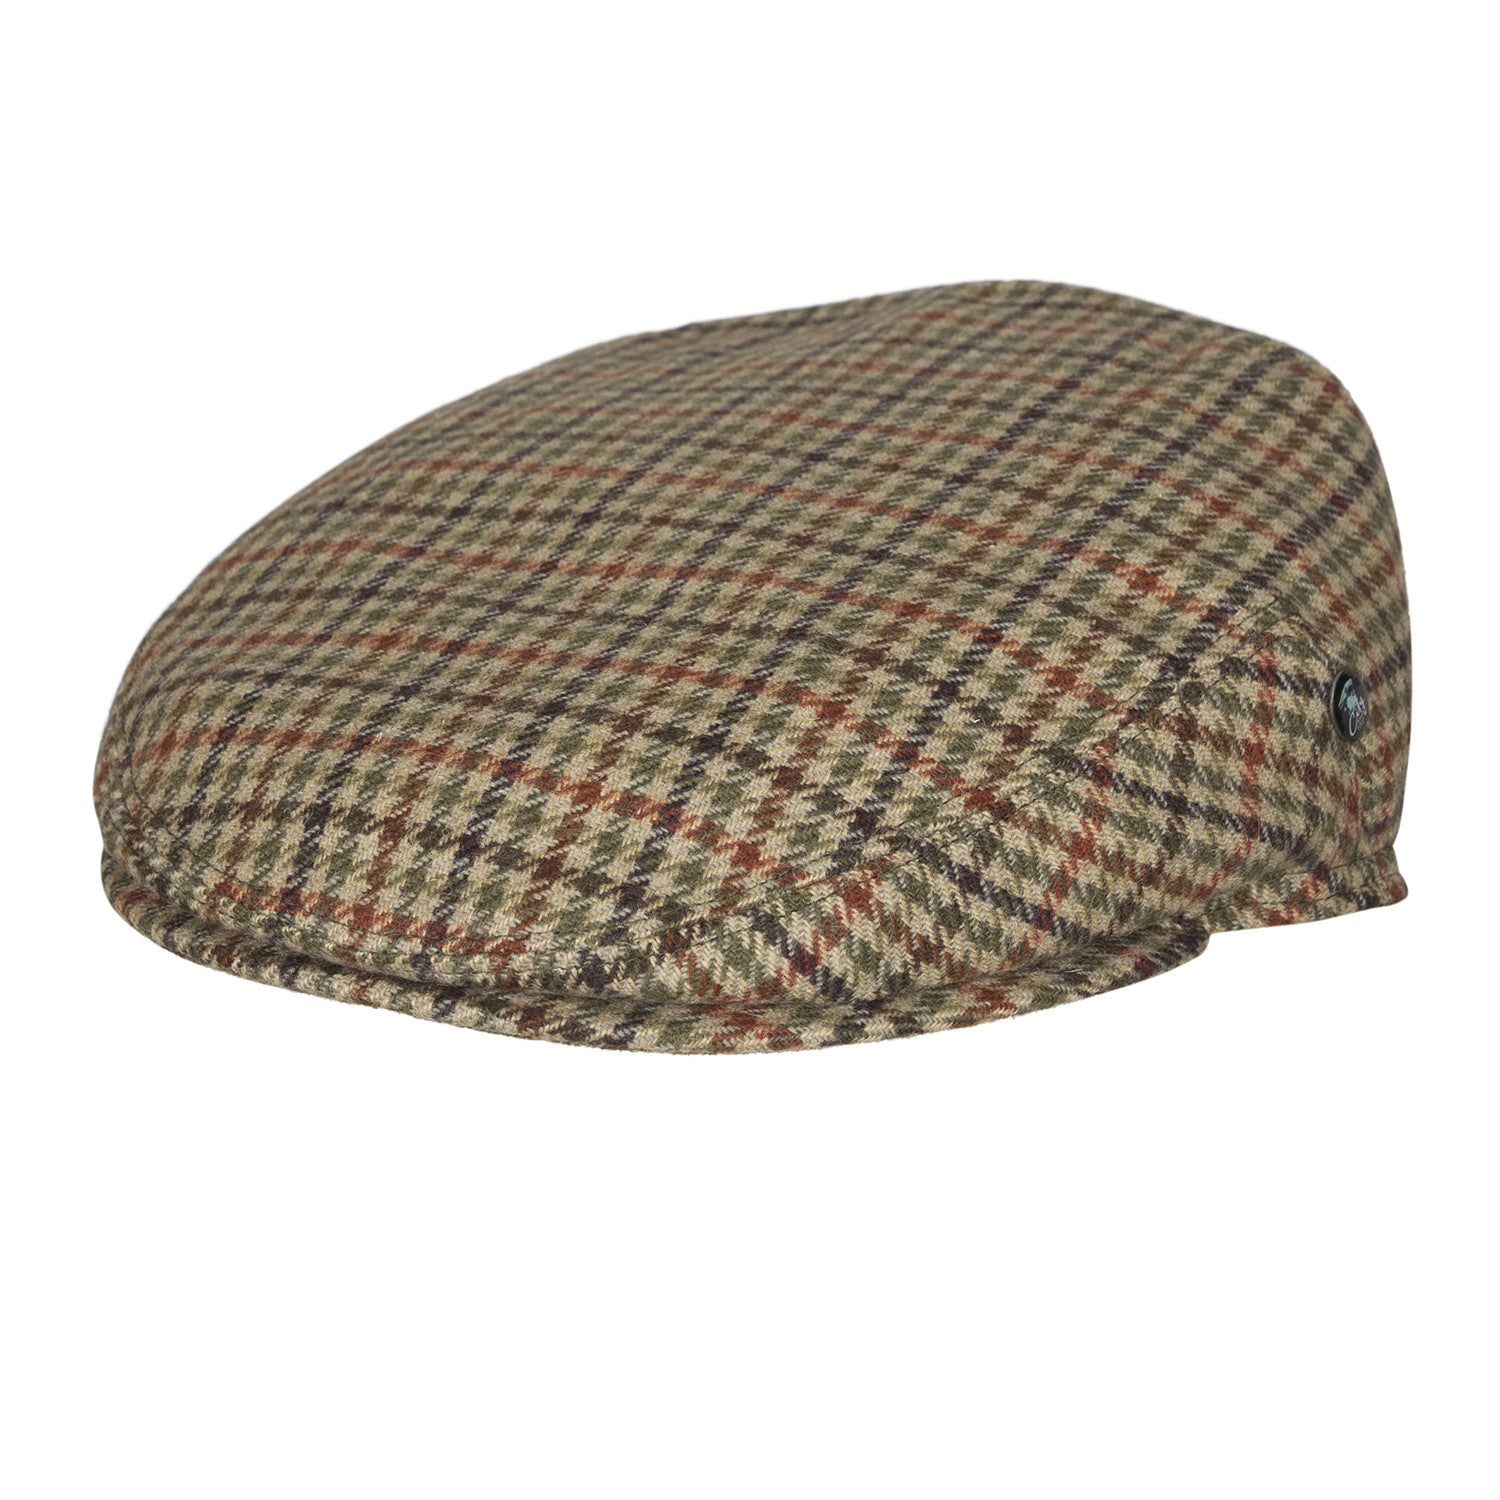 City Sport - Wool Ear Flap Cap - Houndstooth Green Multi Coloured ... 83e74c15afc7